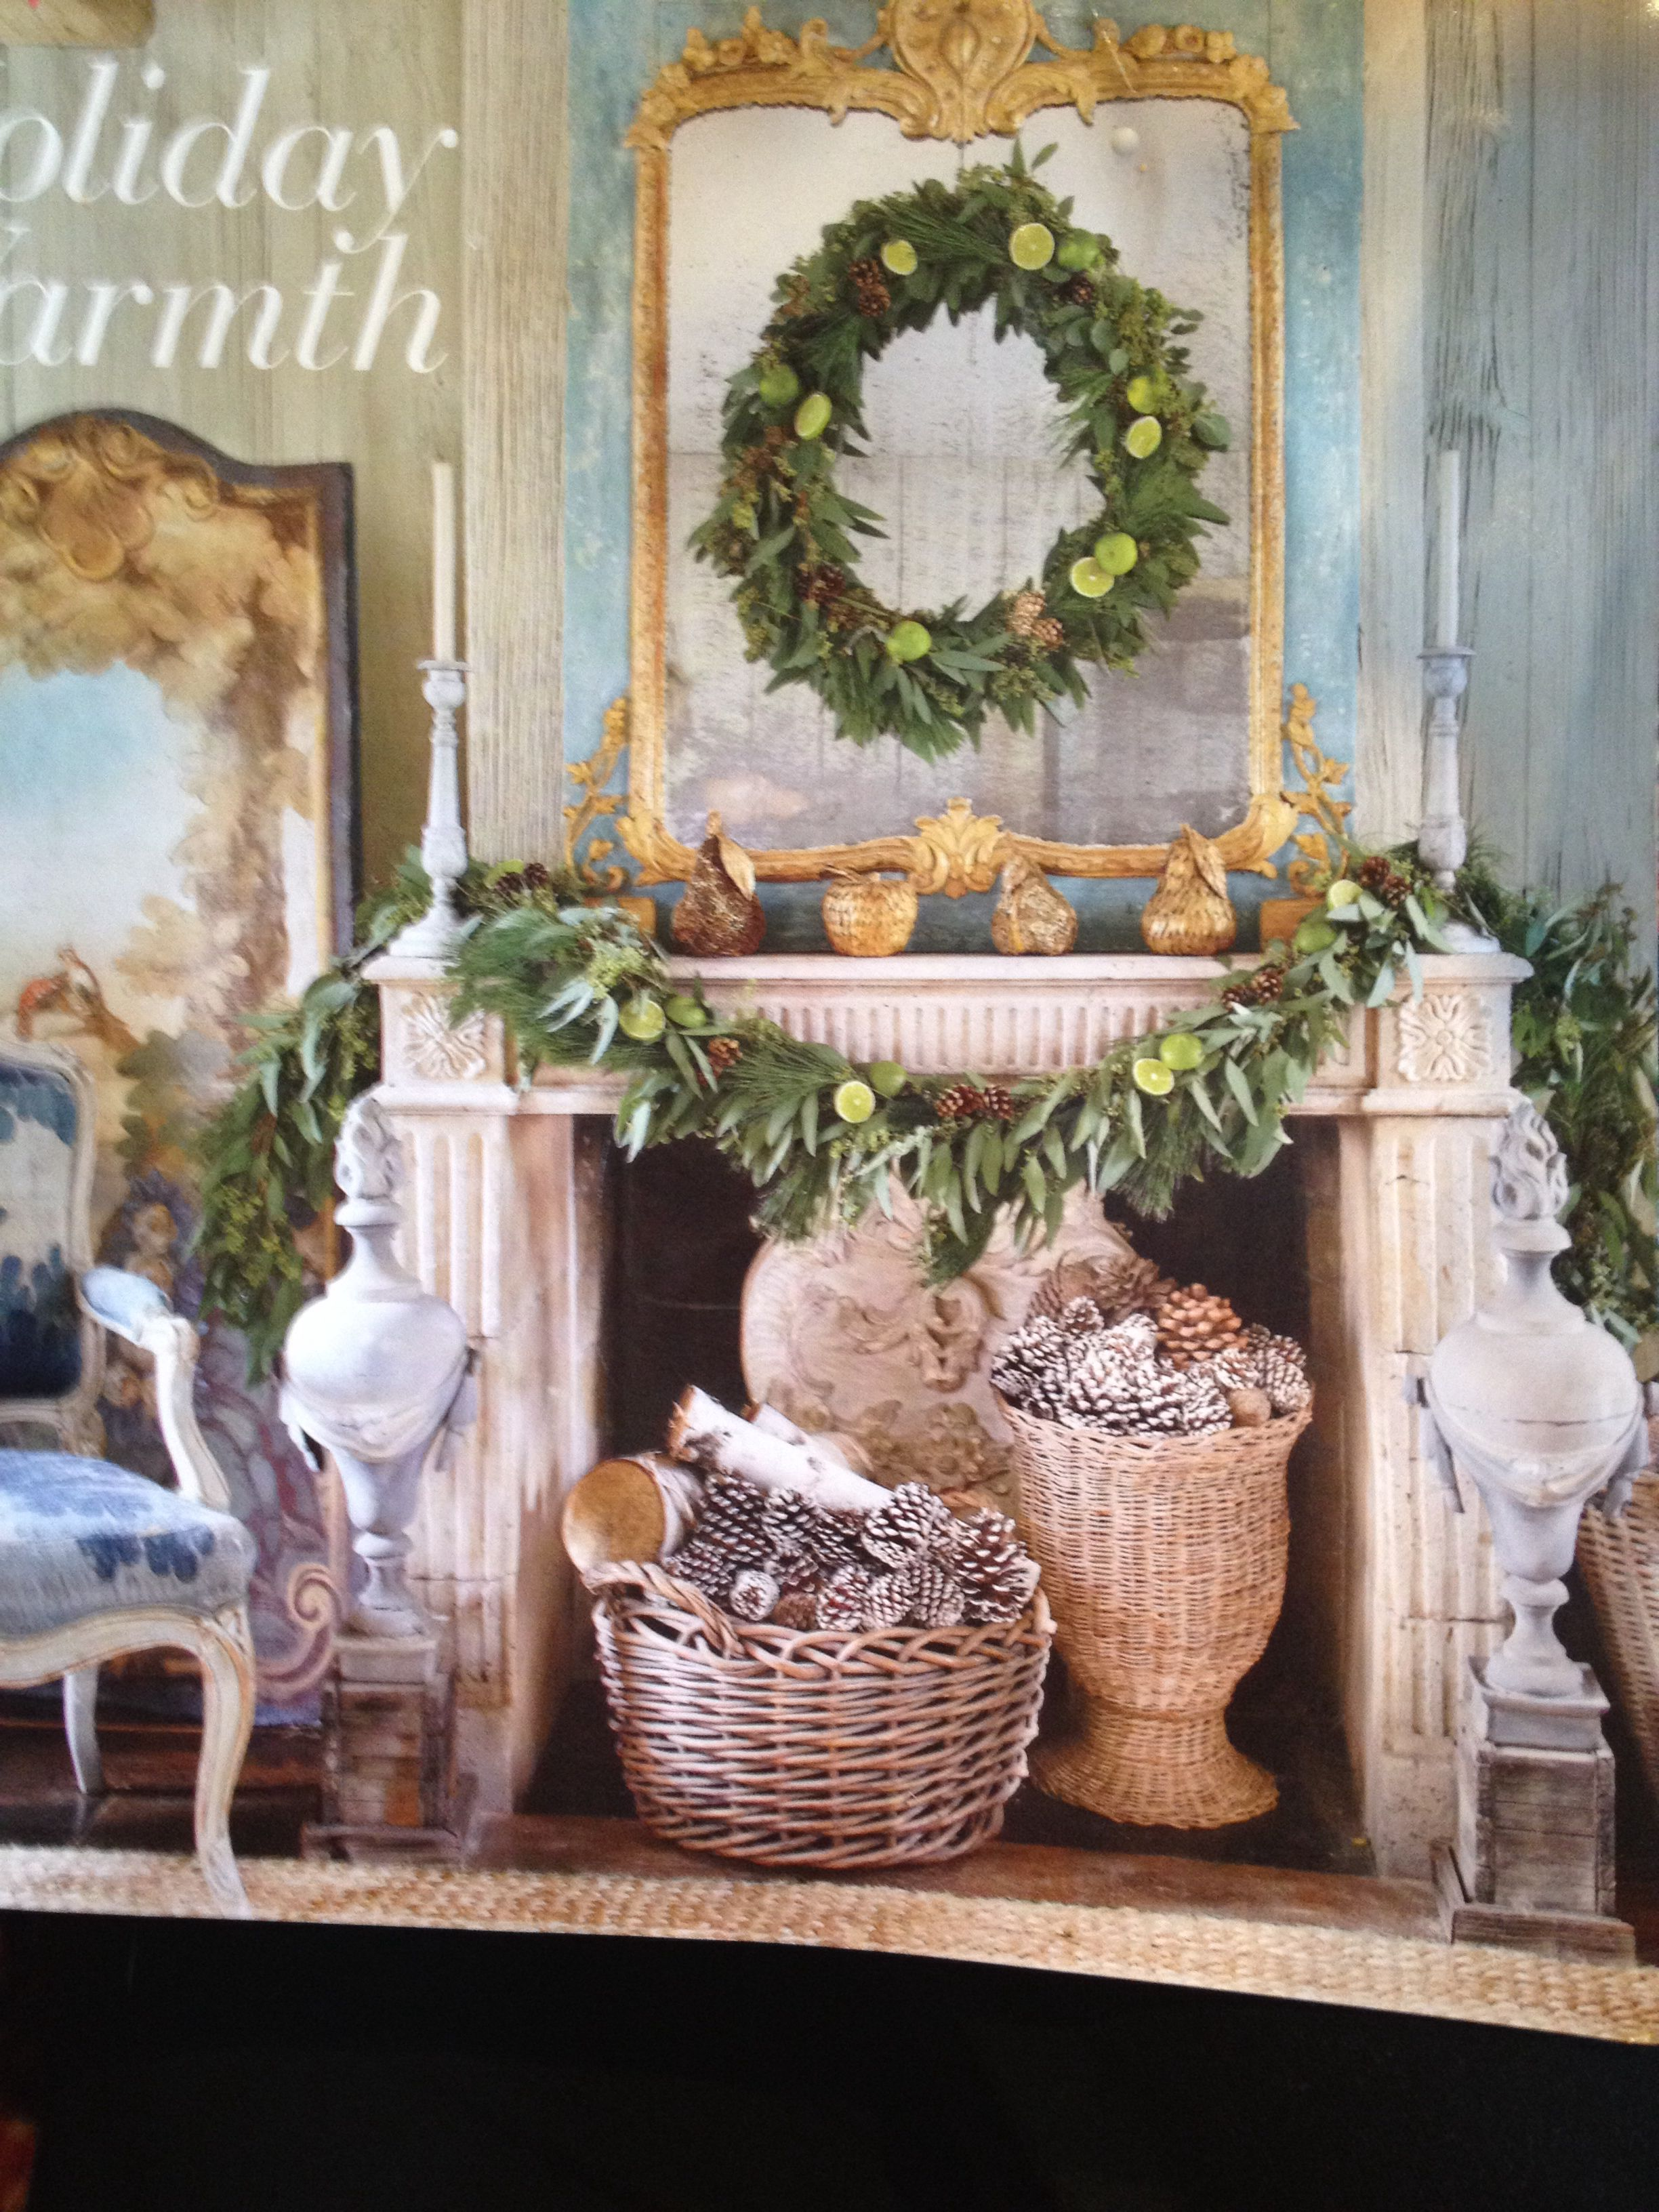 Mantle decor garland and wreath